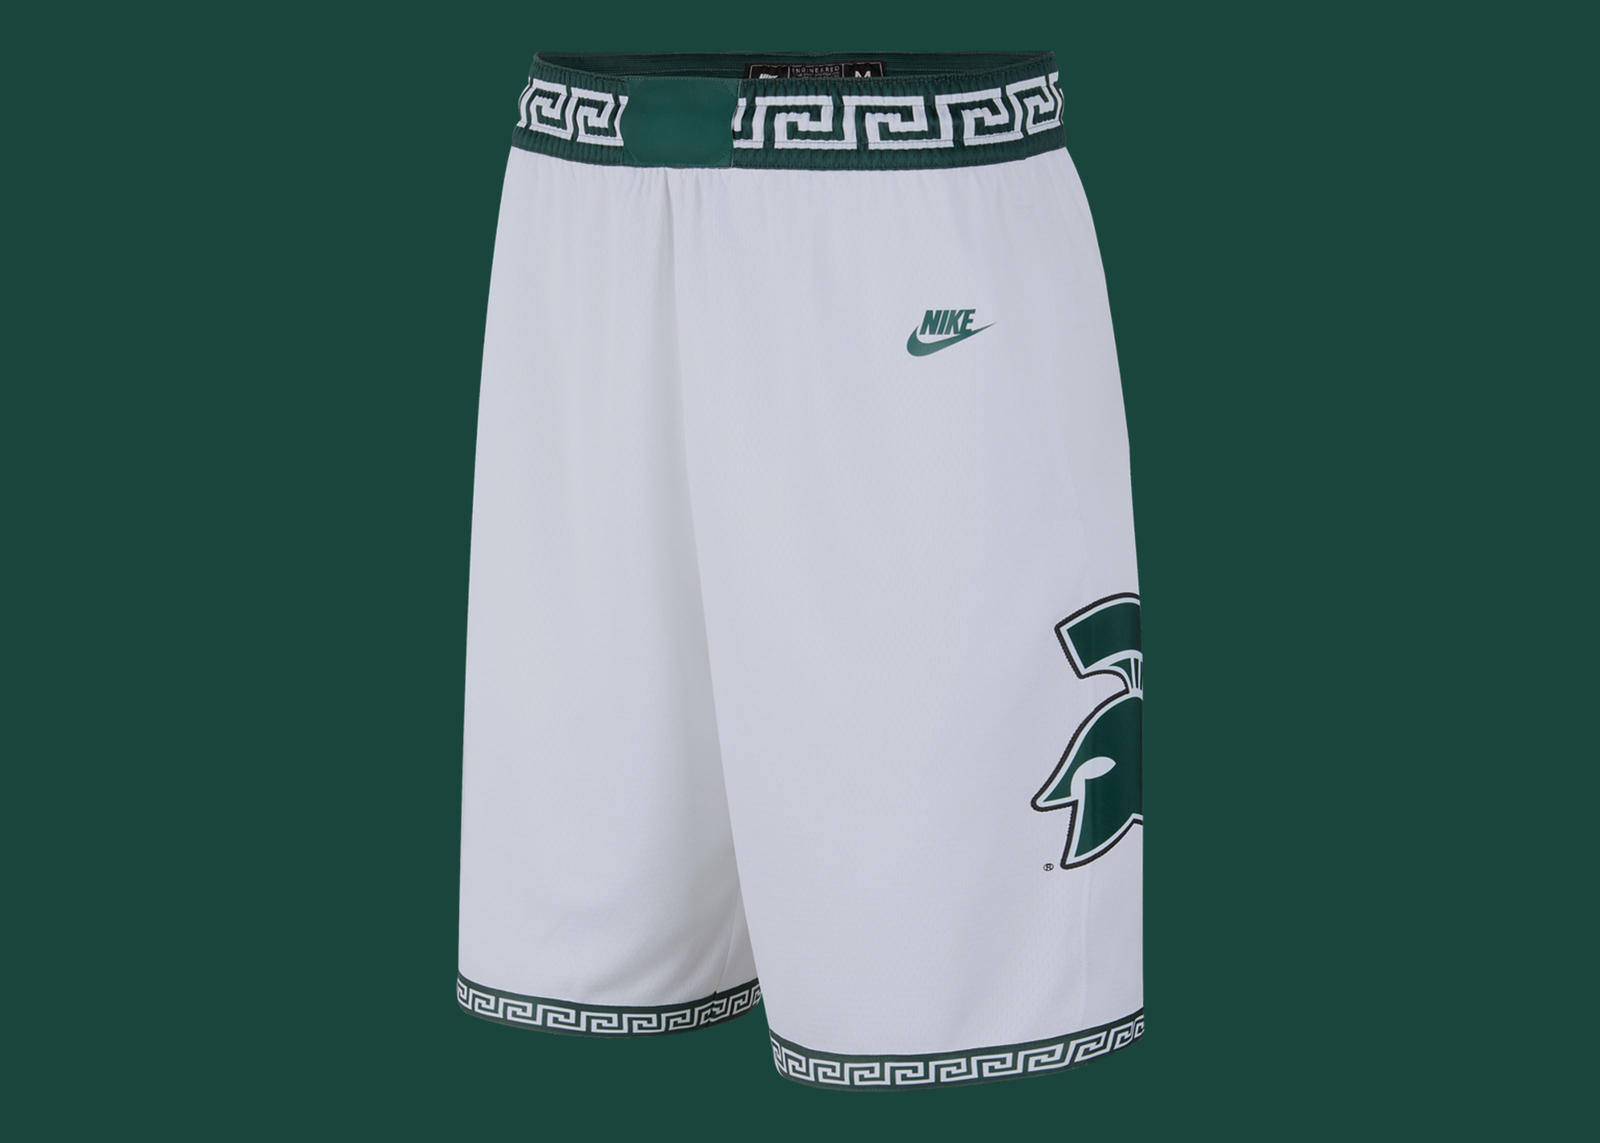 Nike Michigan State Spartans 2000 Retro Jerseys Official Images and Release Date 2